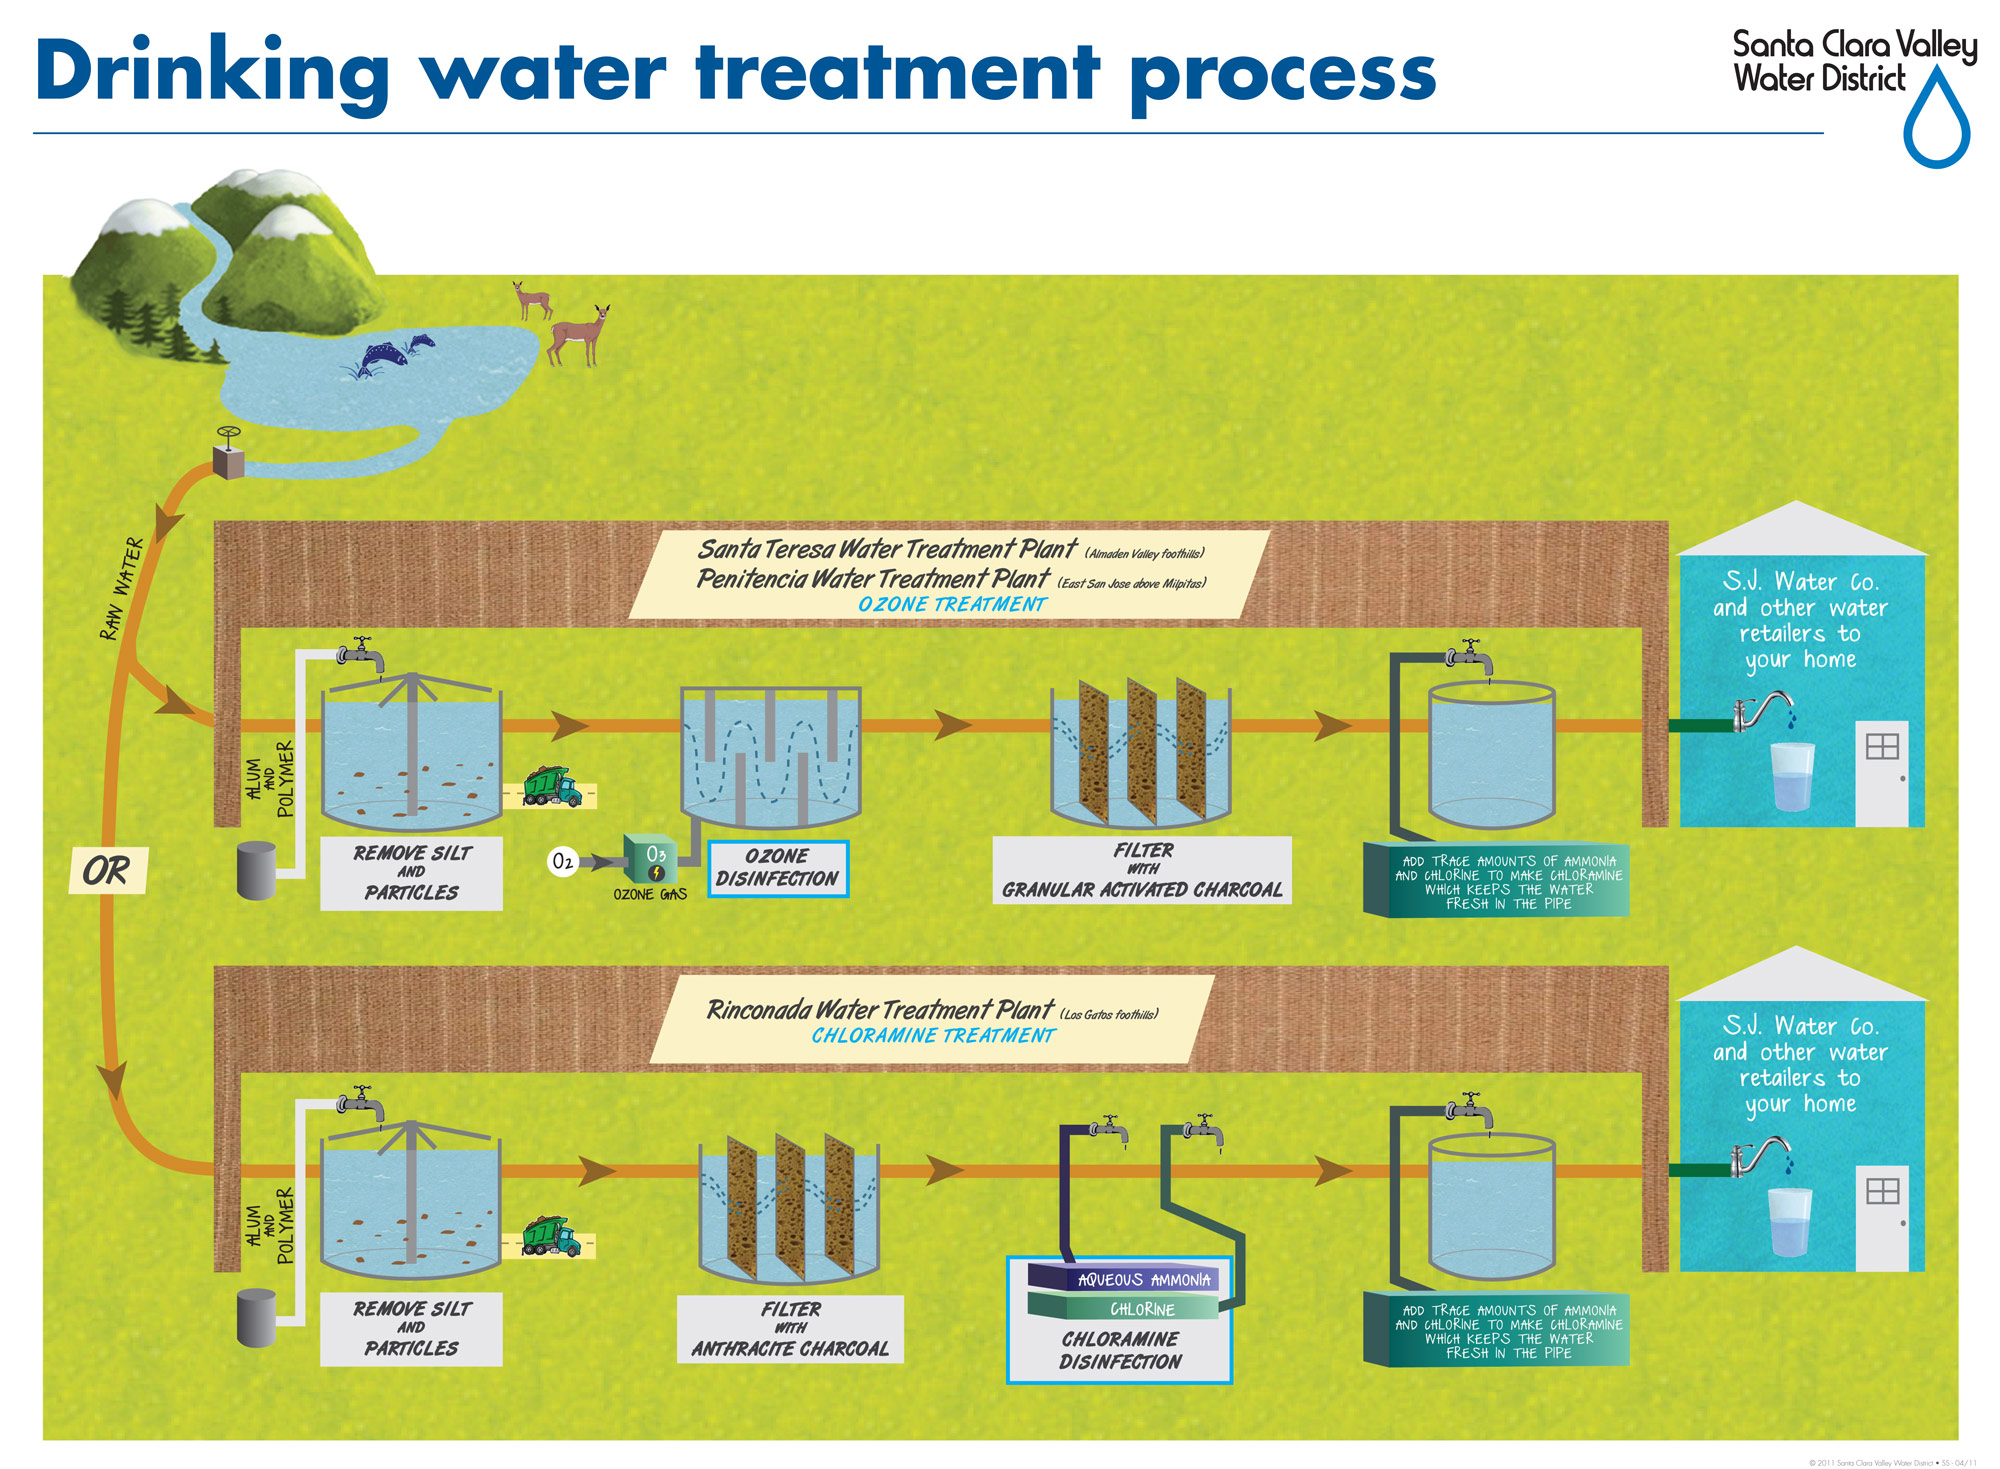 illustration of the water treatment process